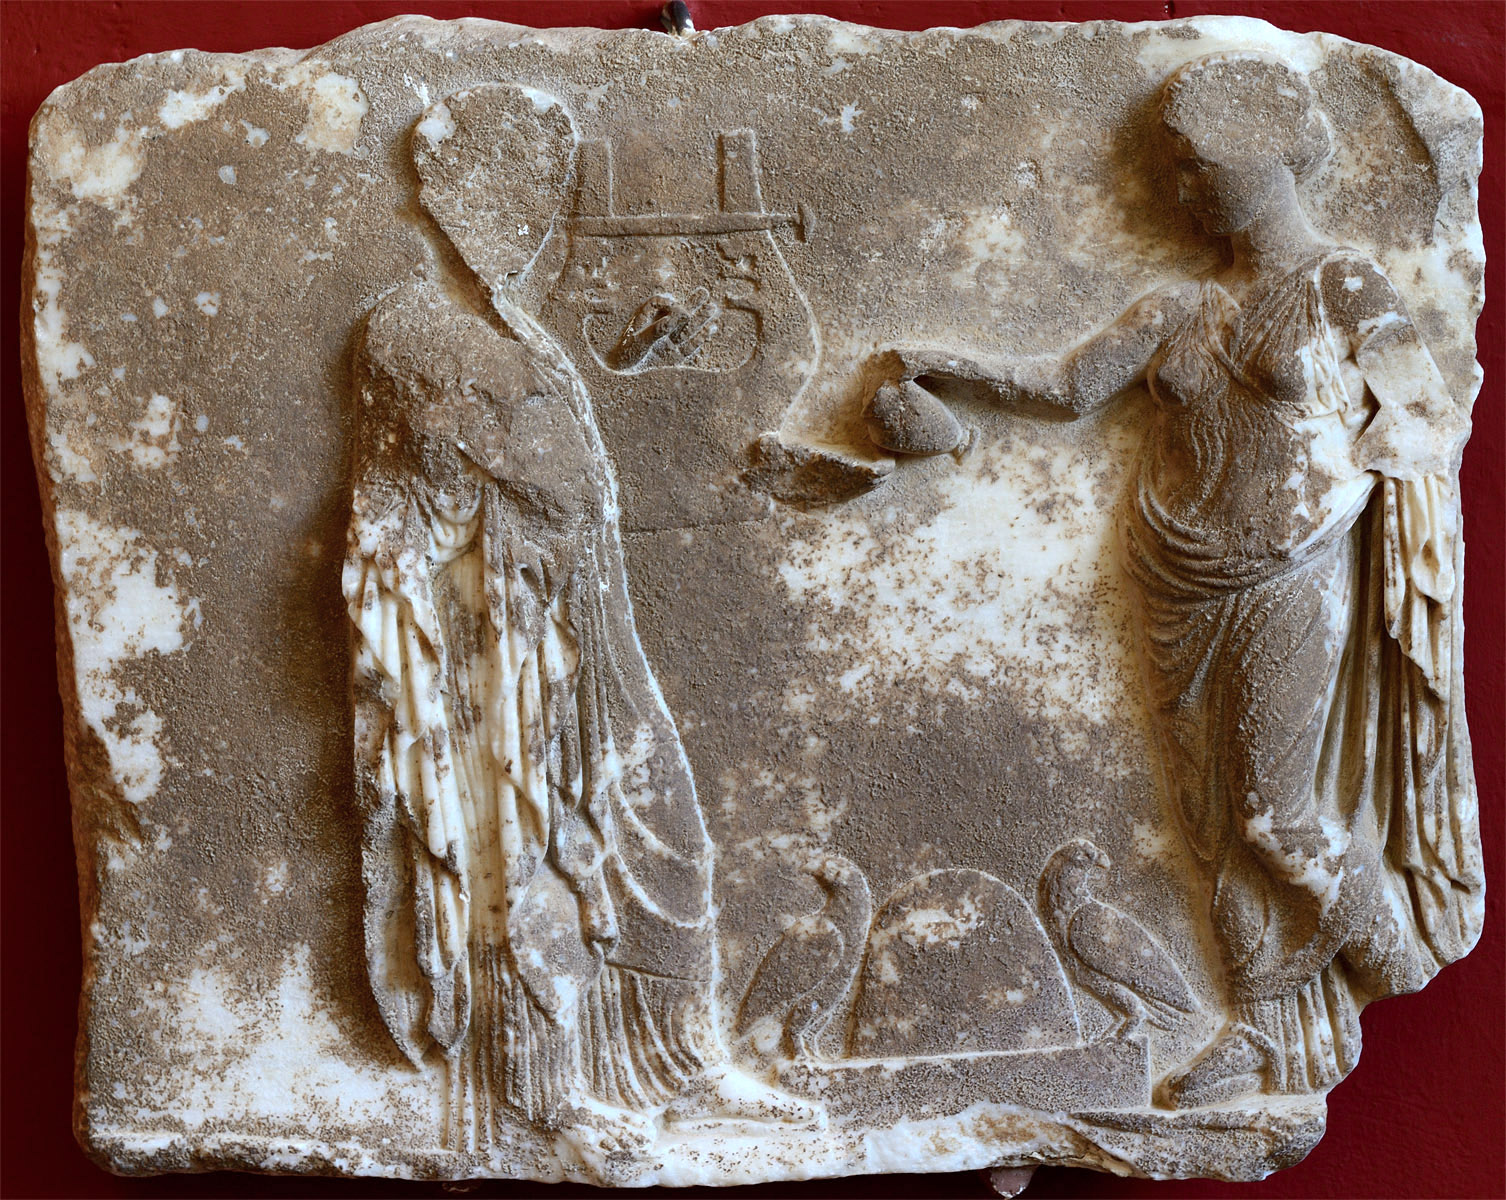 Apollo and Artemis offering a libation over the Delphic omphalos. Marble. Votive relief. 4th cent. CE. Inv. No. 468. Sparta, Archaeological Museum